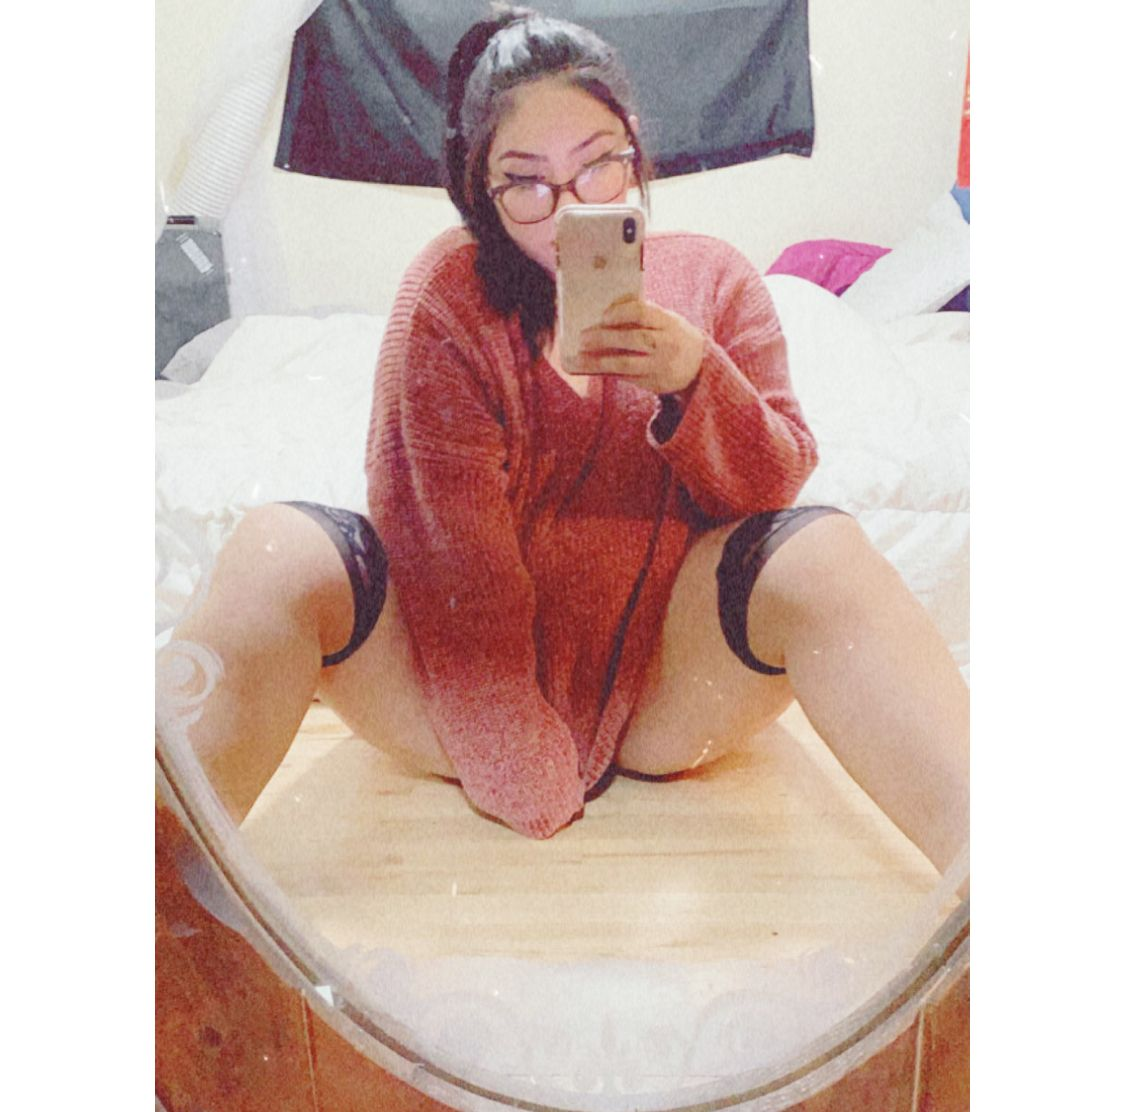 Rose photos and videos onlyfans leaked